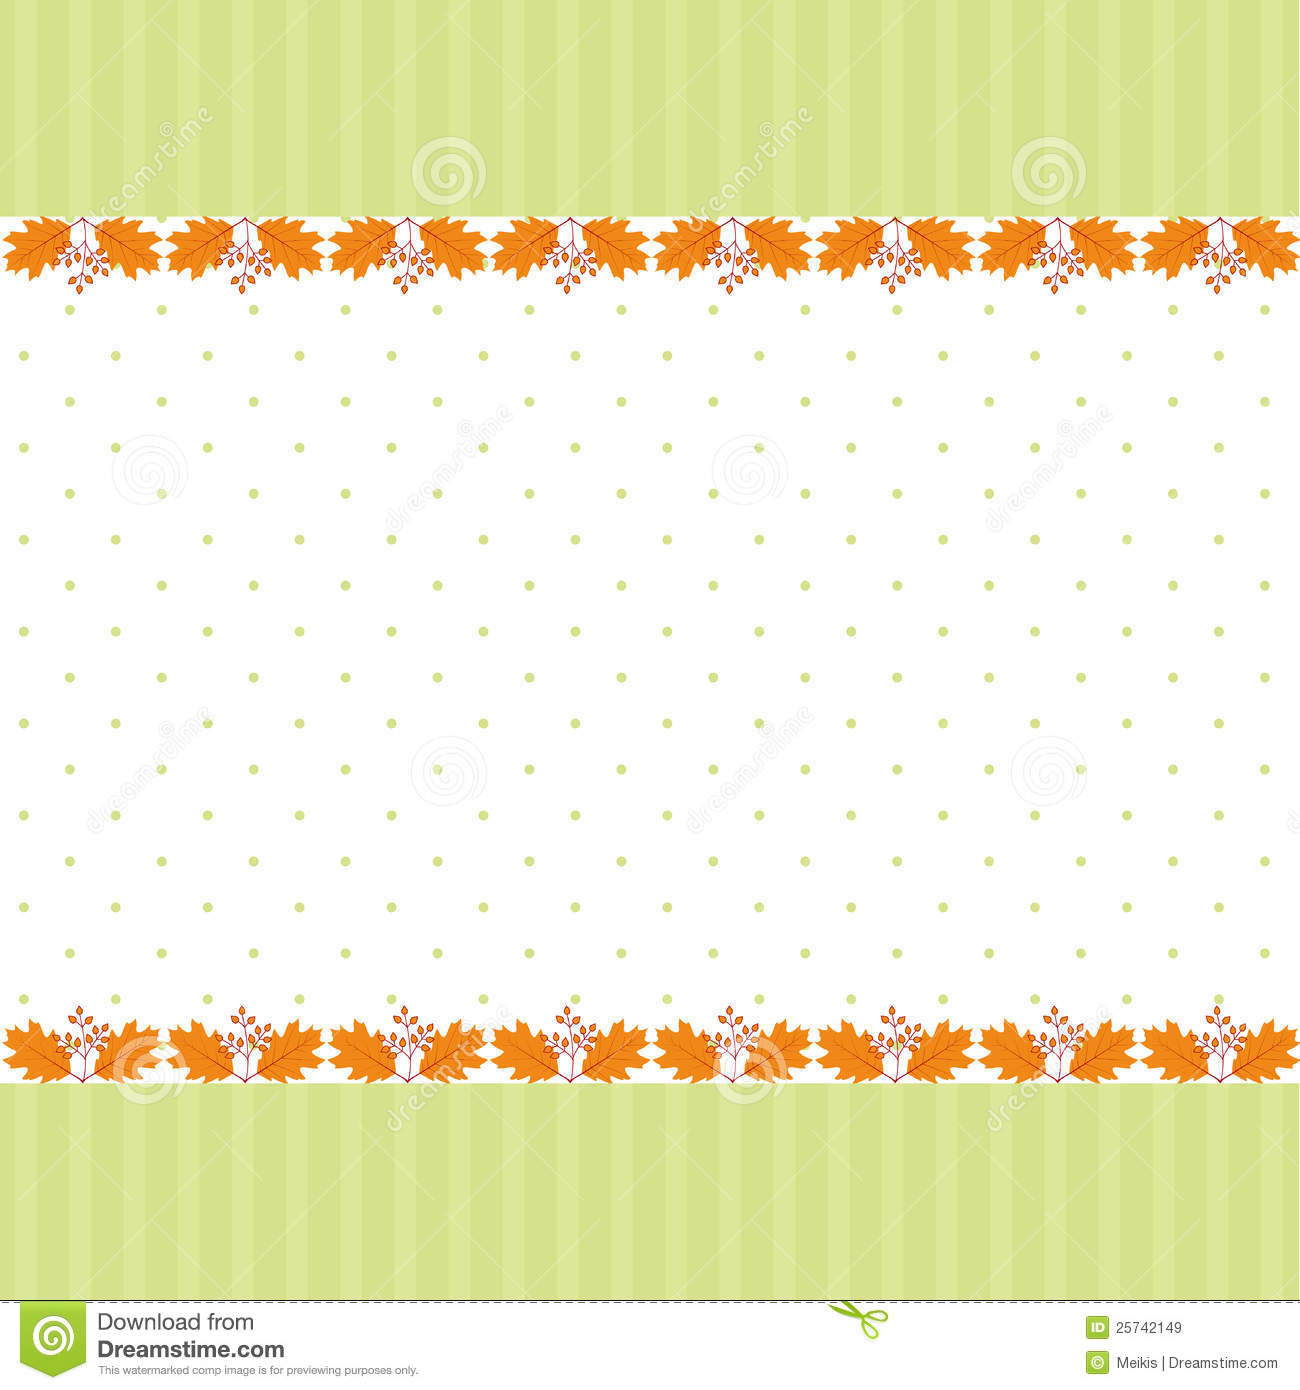 Abstract autumn leaf greeting card